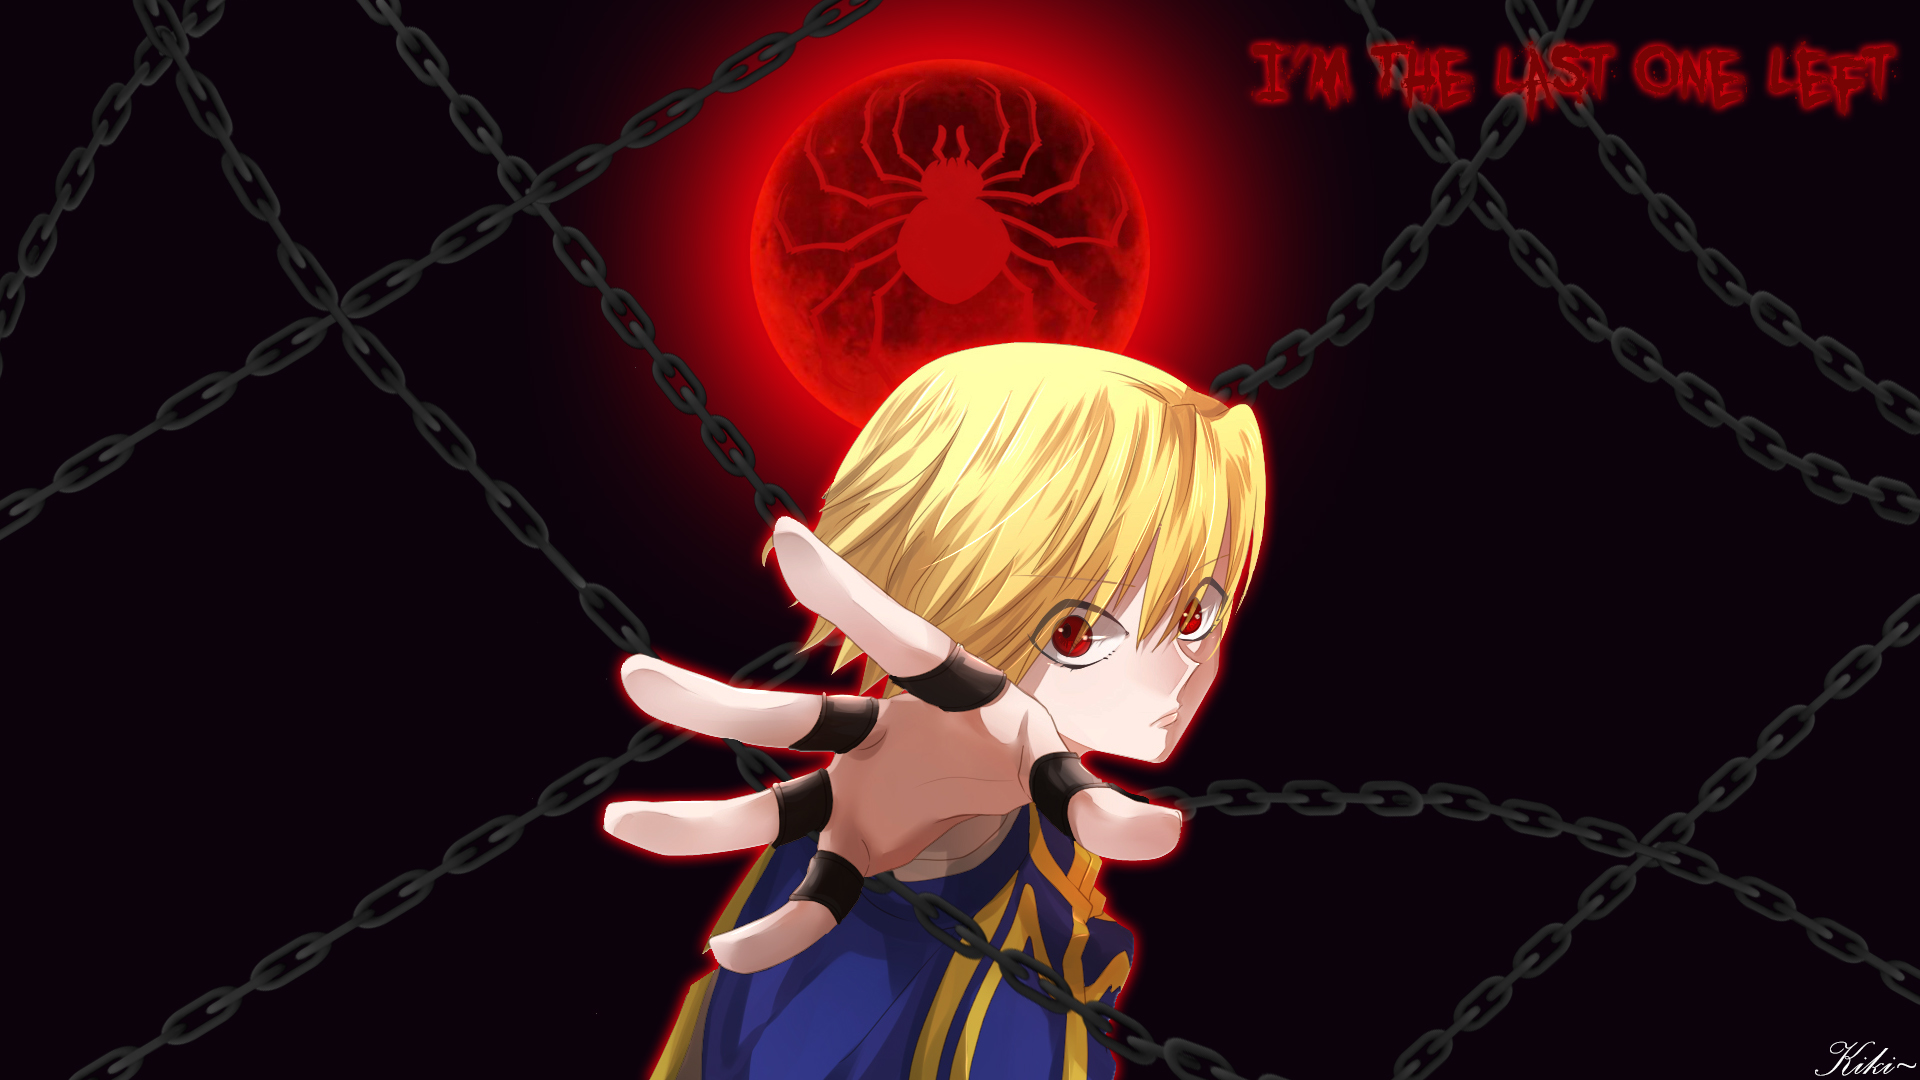 Hunter X Hunter Kurapika Wallpaper 1920x1080 By Mrkcgaming On